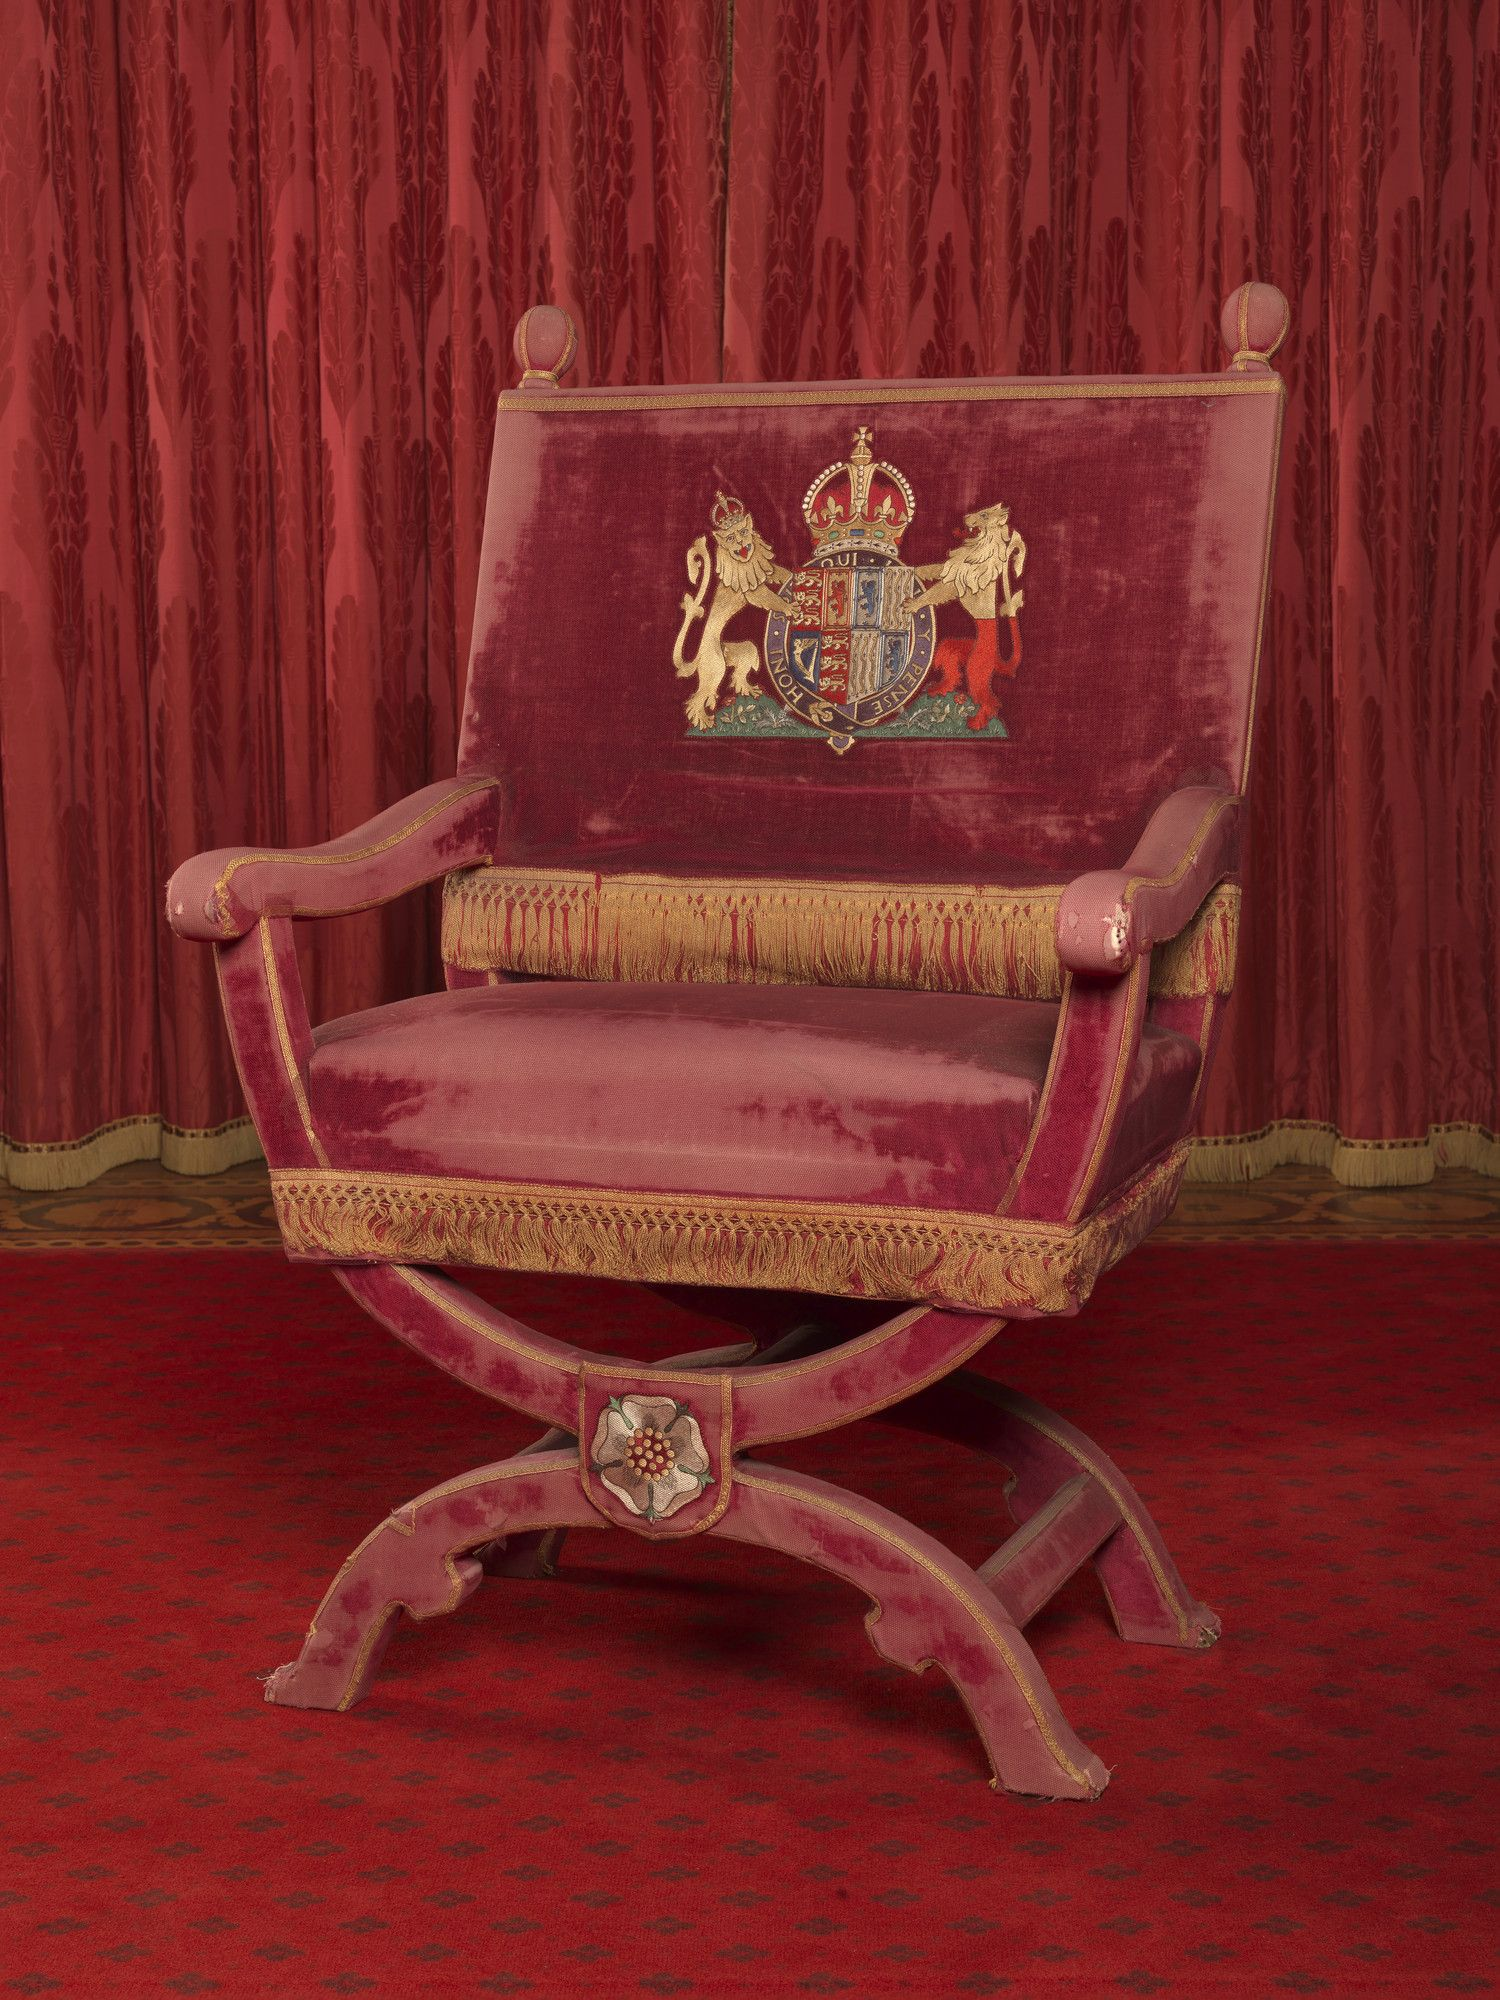 Queen Chairs Throne Chair Made For The Coronation Of King George Vi